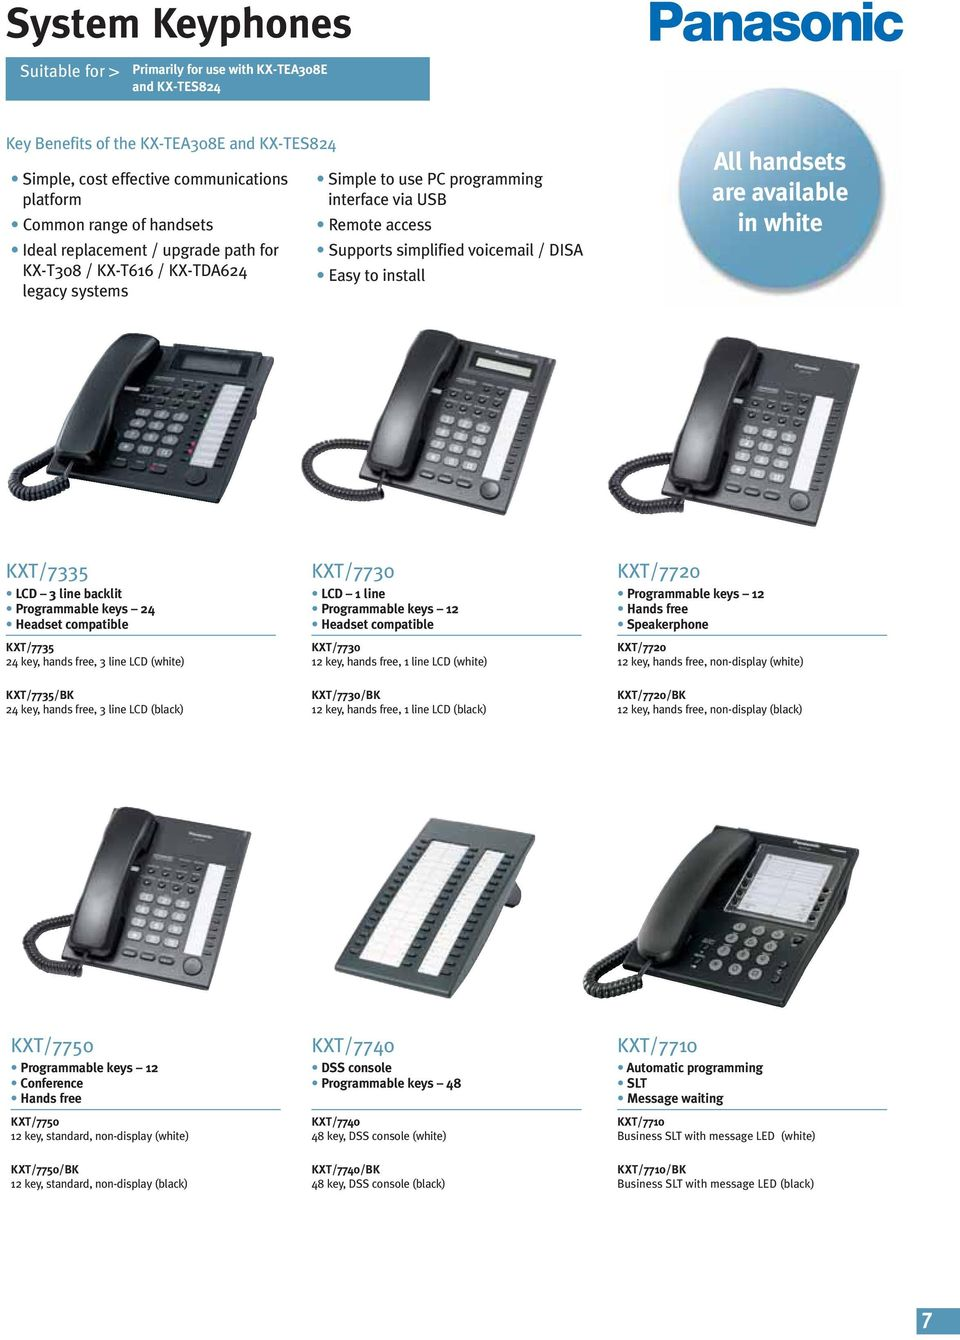 handsets are available in white KXT/7335 LCD 3 line backlit Programmable keys 24 Headset compatible KXT/7735 24 key, hands free, 3 line LCD (white) KXT/7730 LCD 1 line Programmable keys 12 Headset